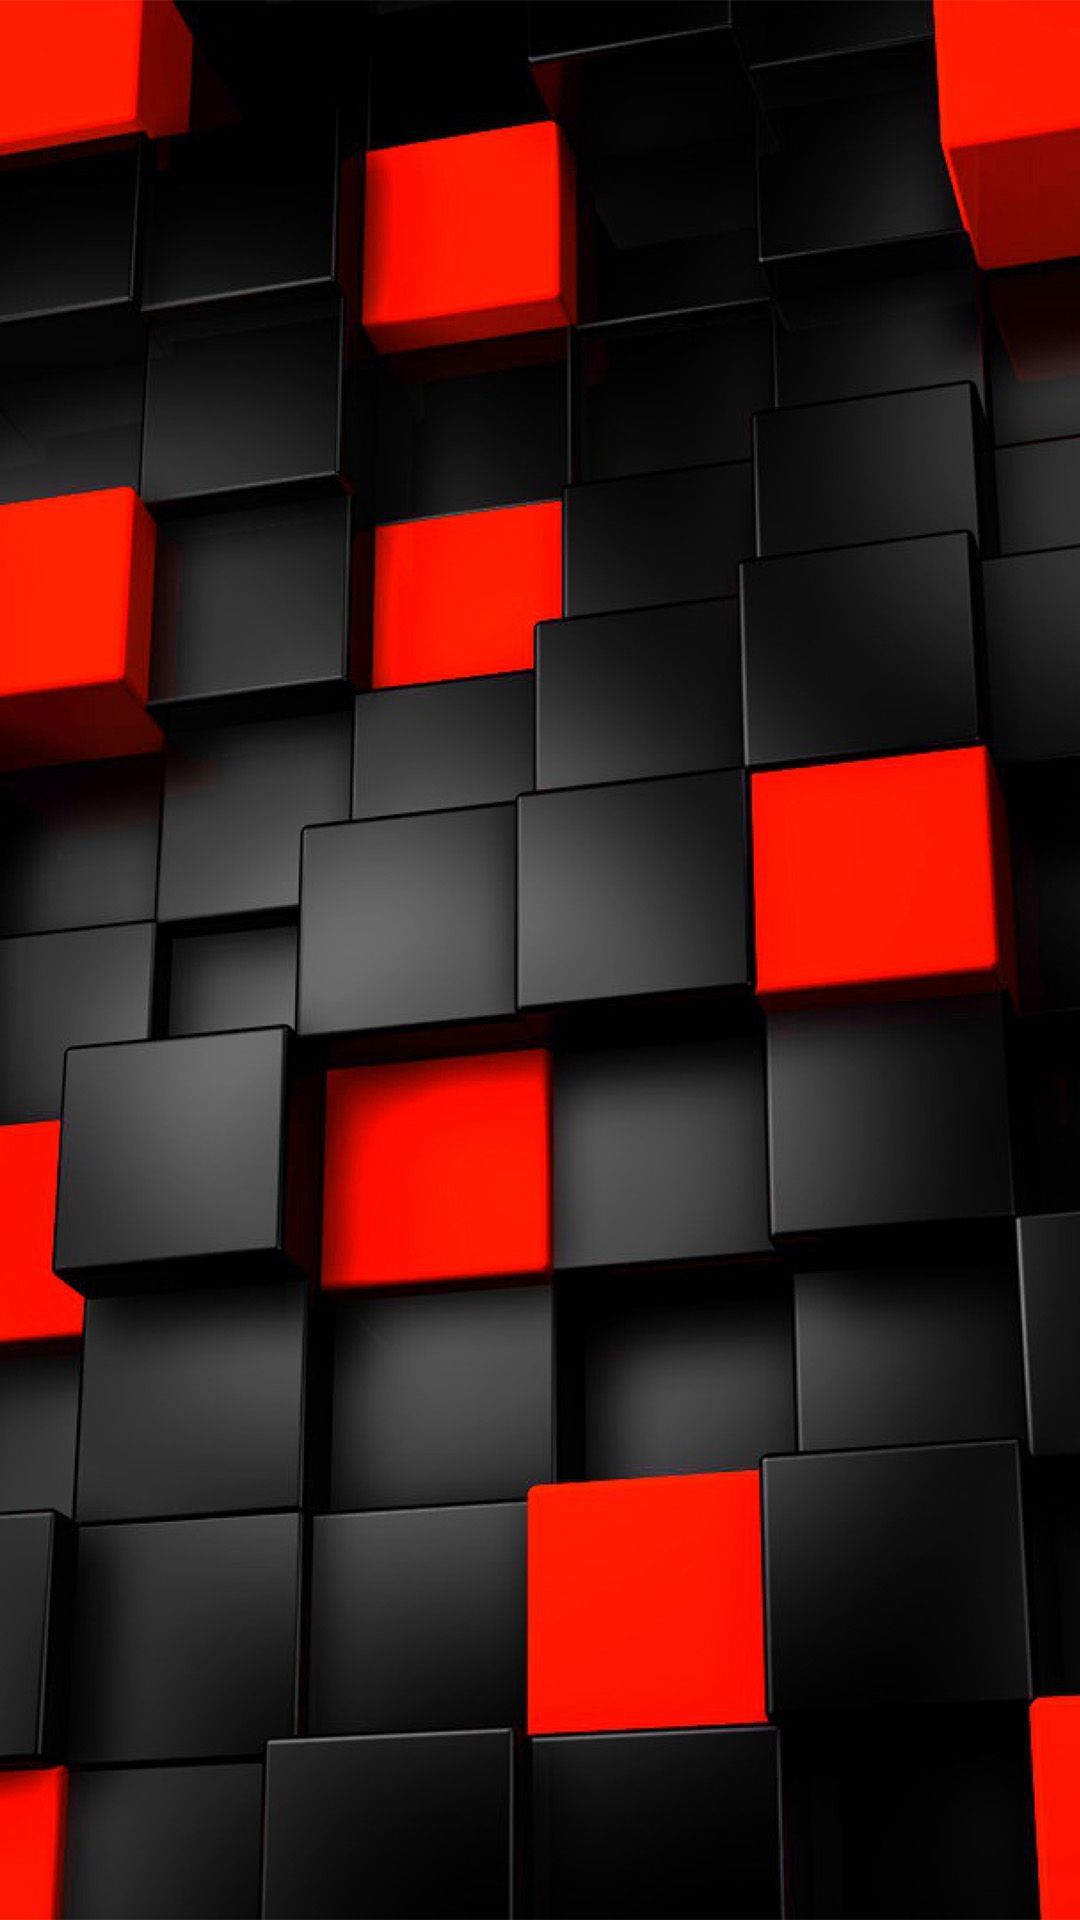 Black And Red Iphone 6 Plus Wallpaper